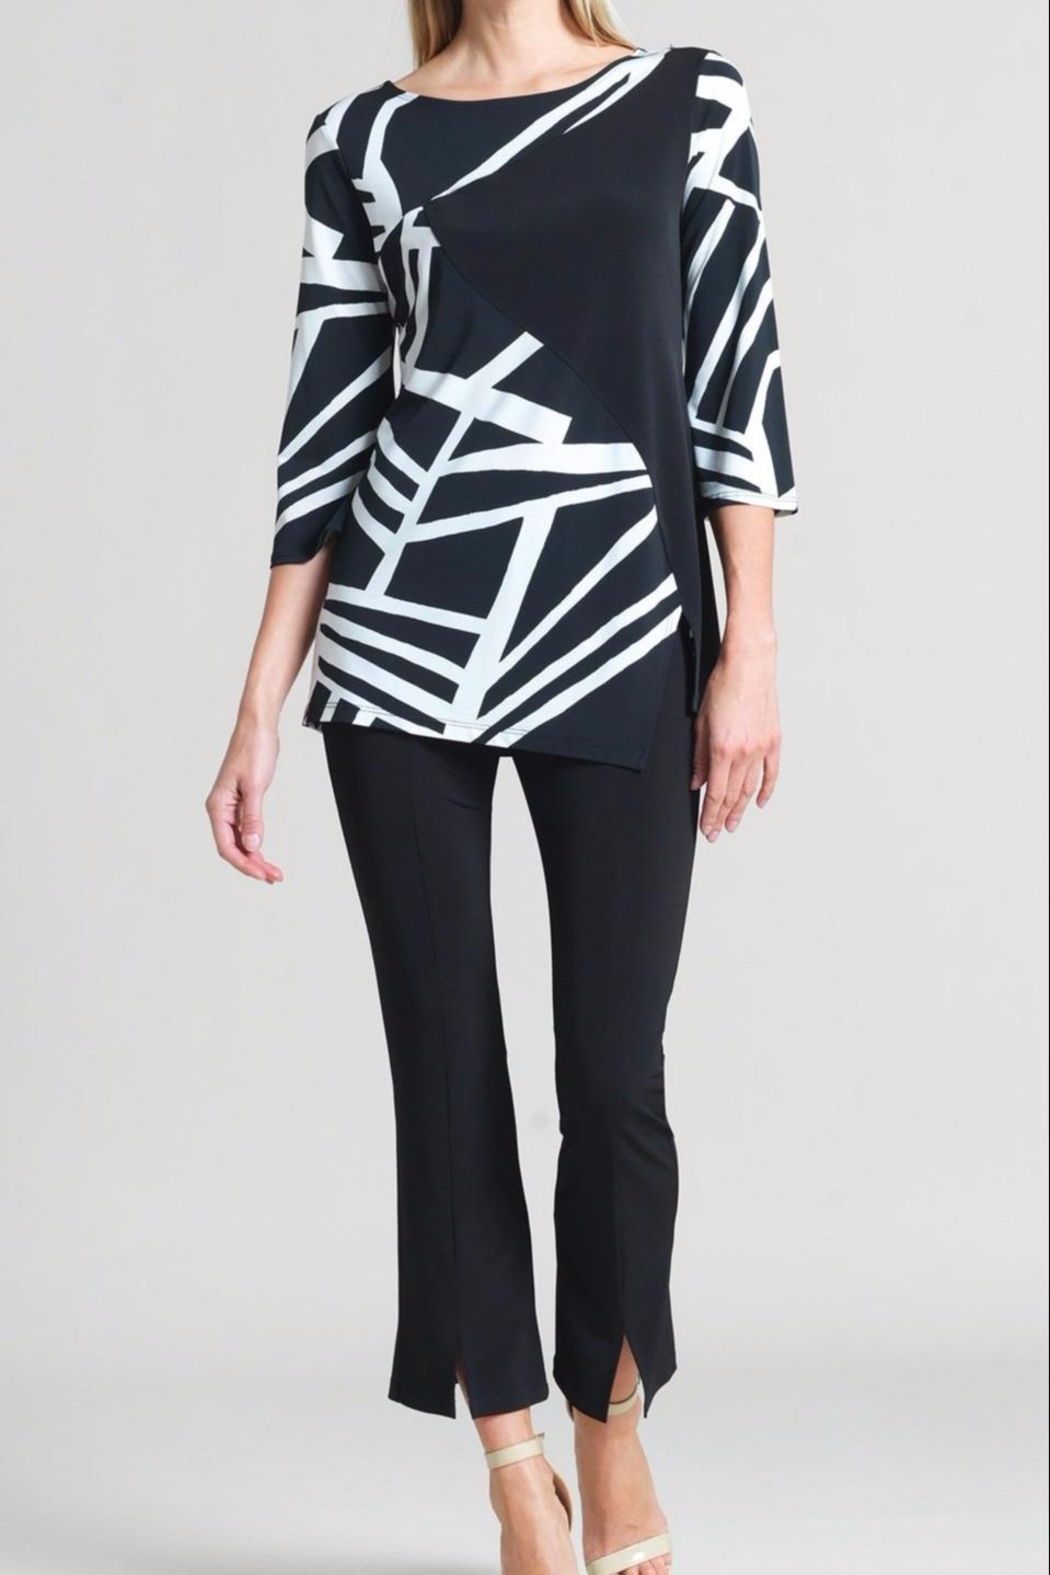 Clara Sunwoo Color-Block Stripe Tunic - Main Image